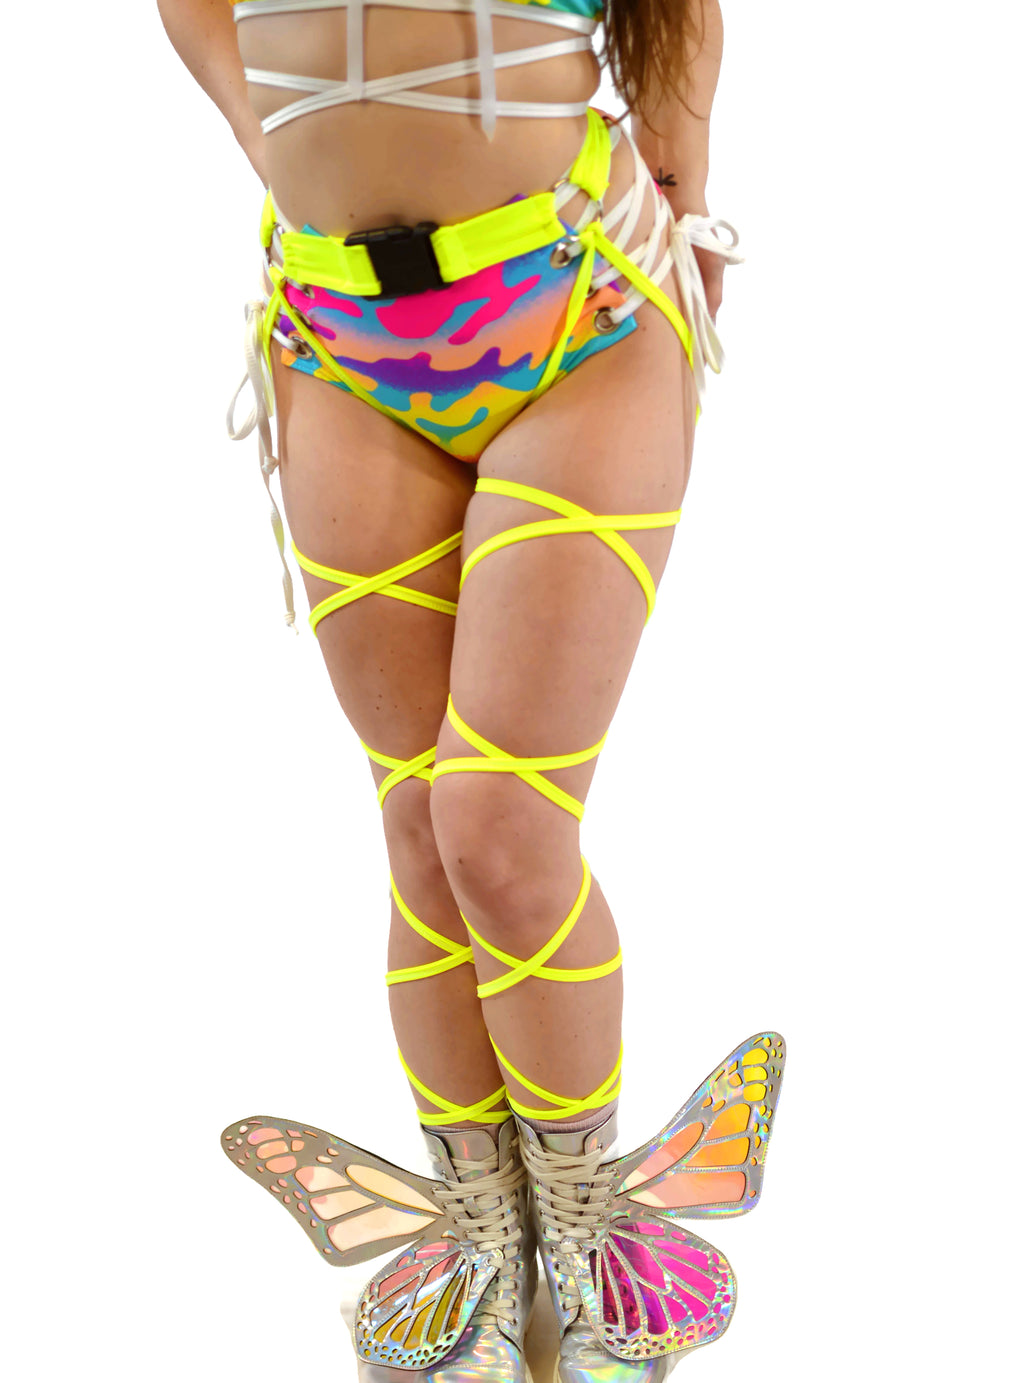 O-Ring Belt Wrap - Neon Yellow - Rolita Couture